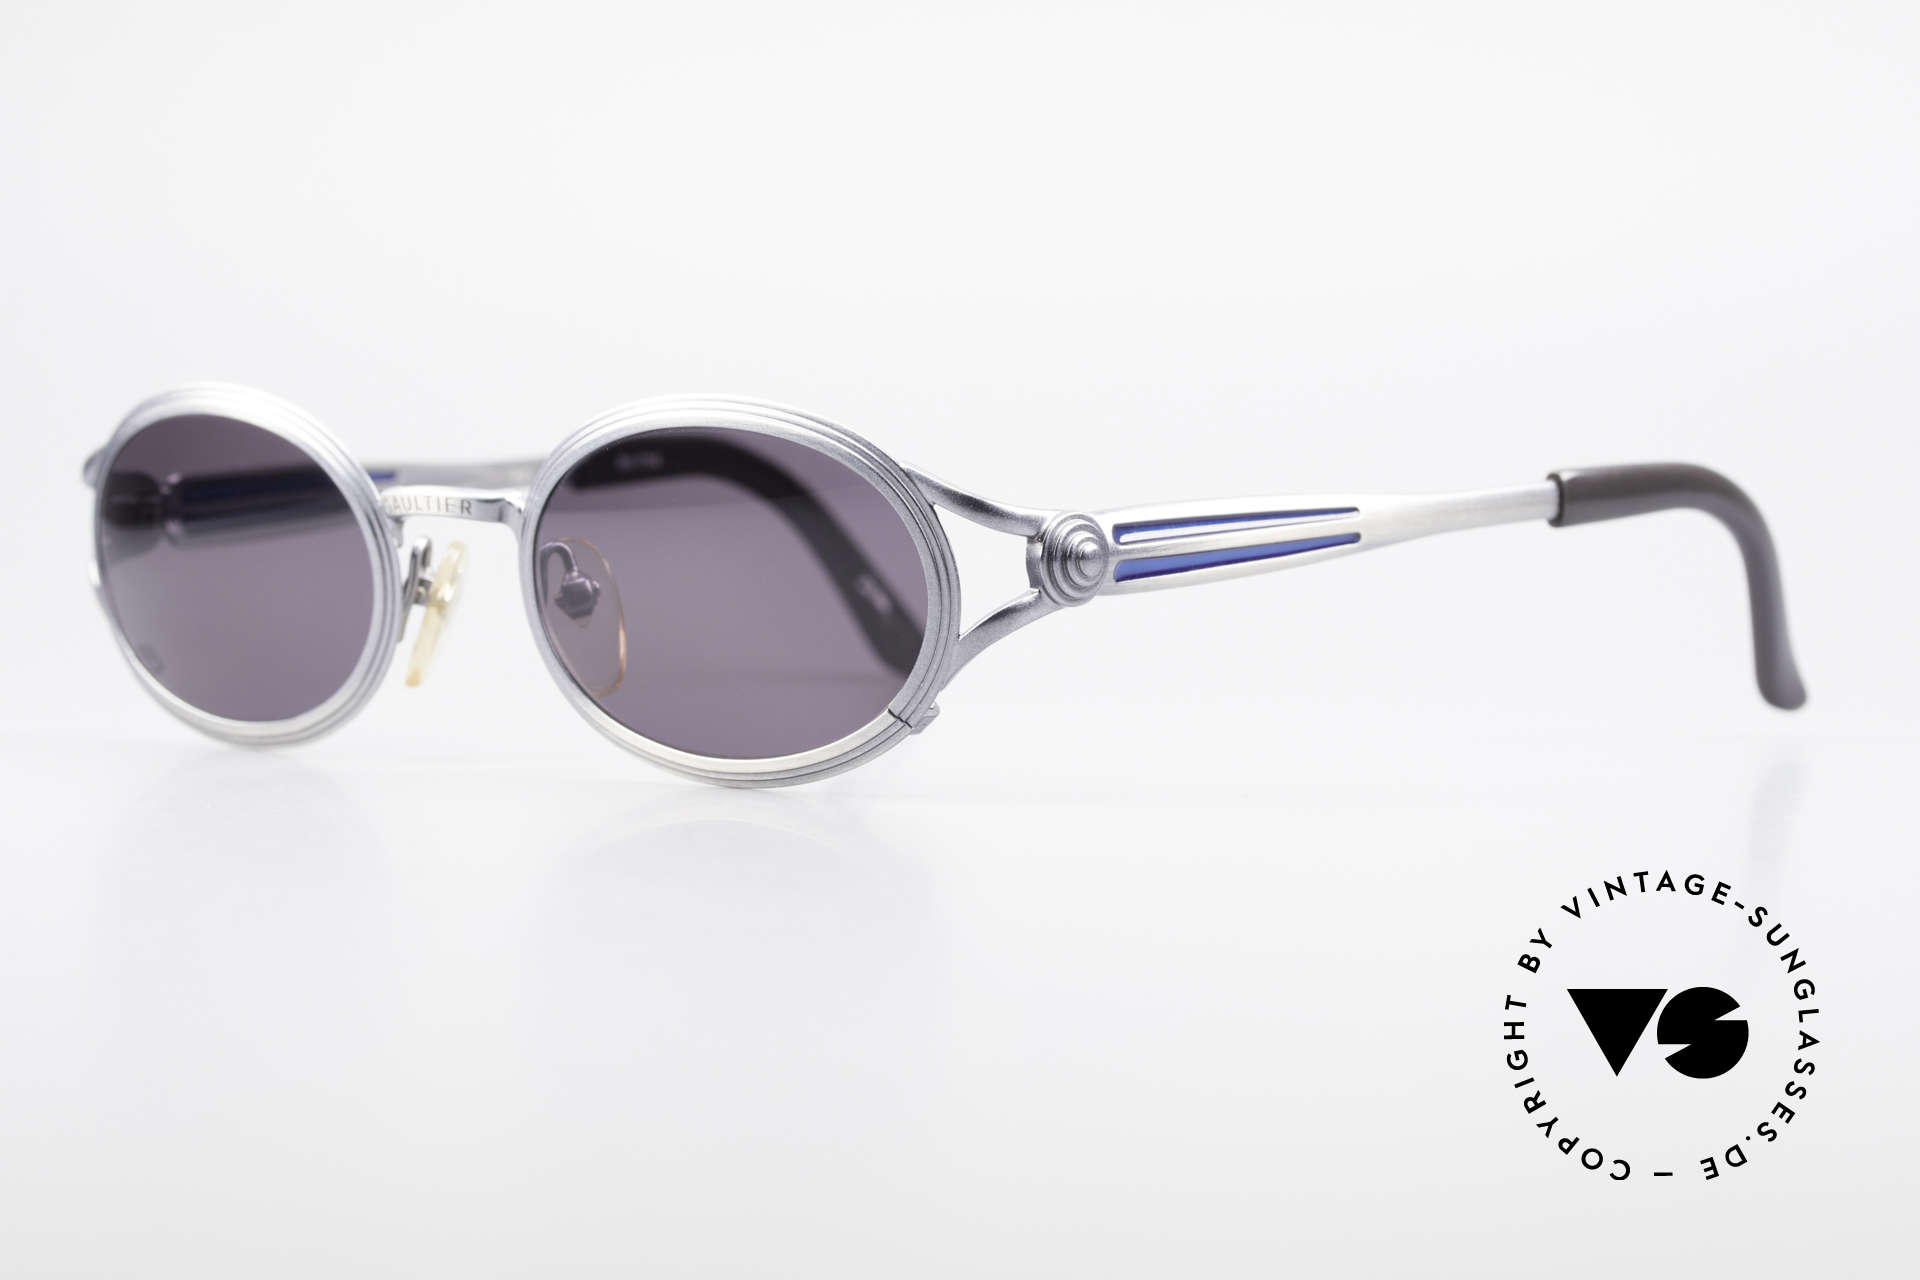 Jean Paul Gaultier 56-7114 Oval Steampunk JPG Glasses, incredible PREMIUM-QUALITY - You must feel this!, Made for Men and Women